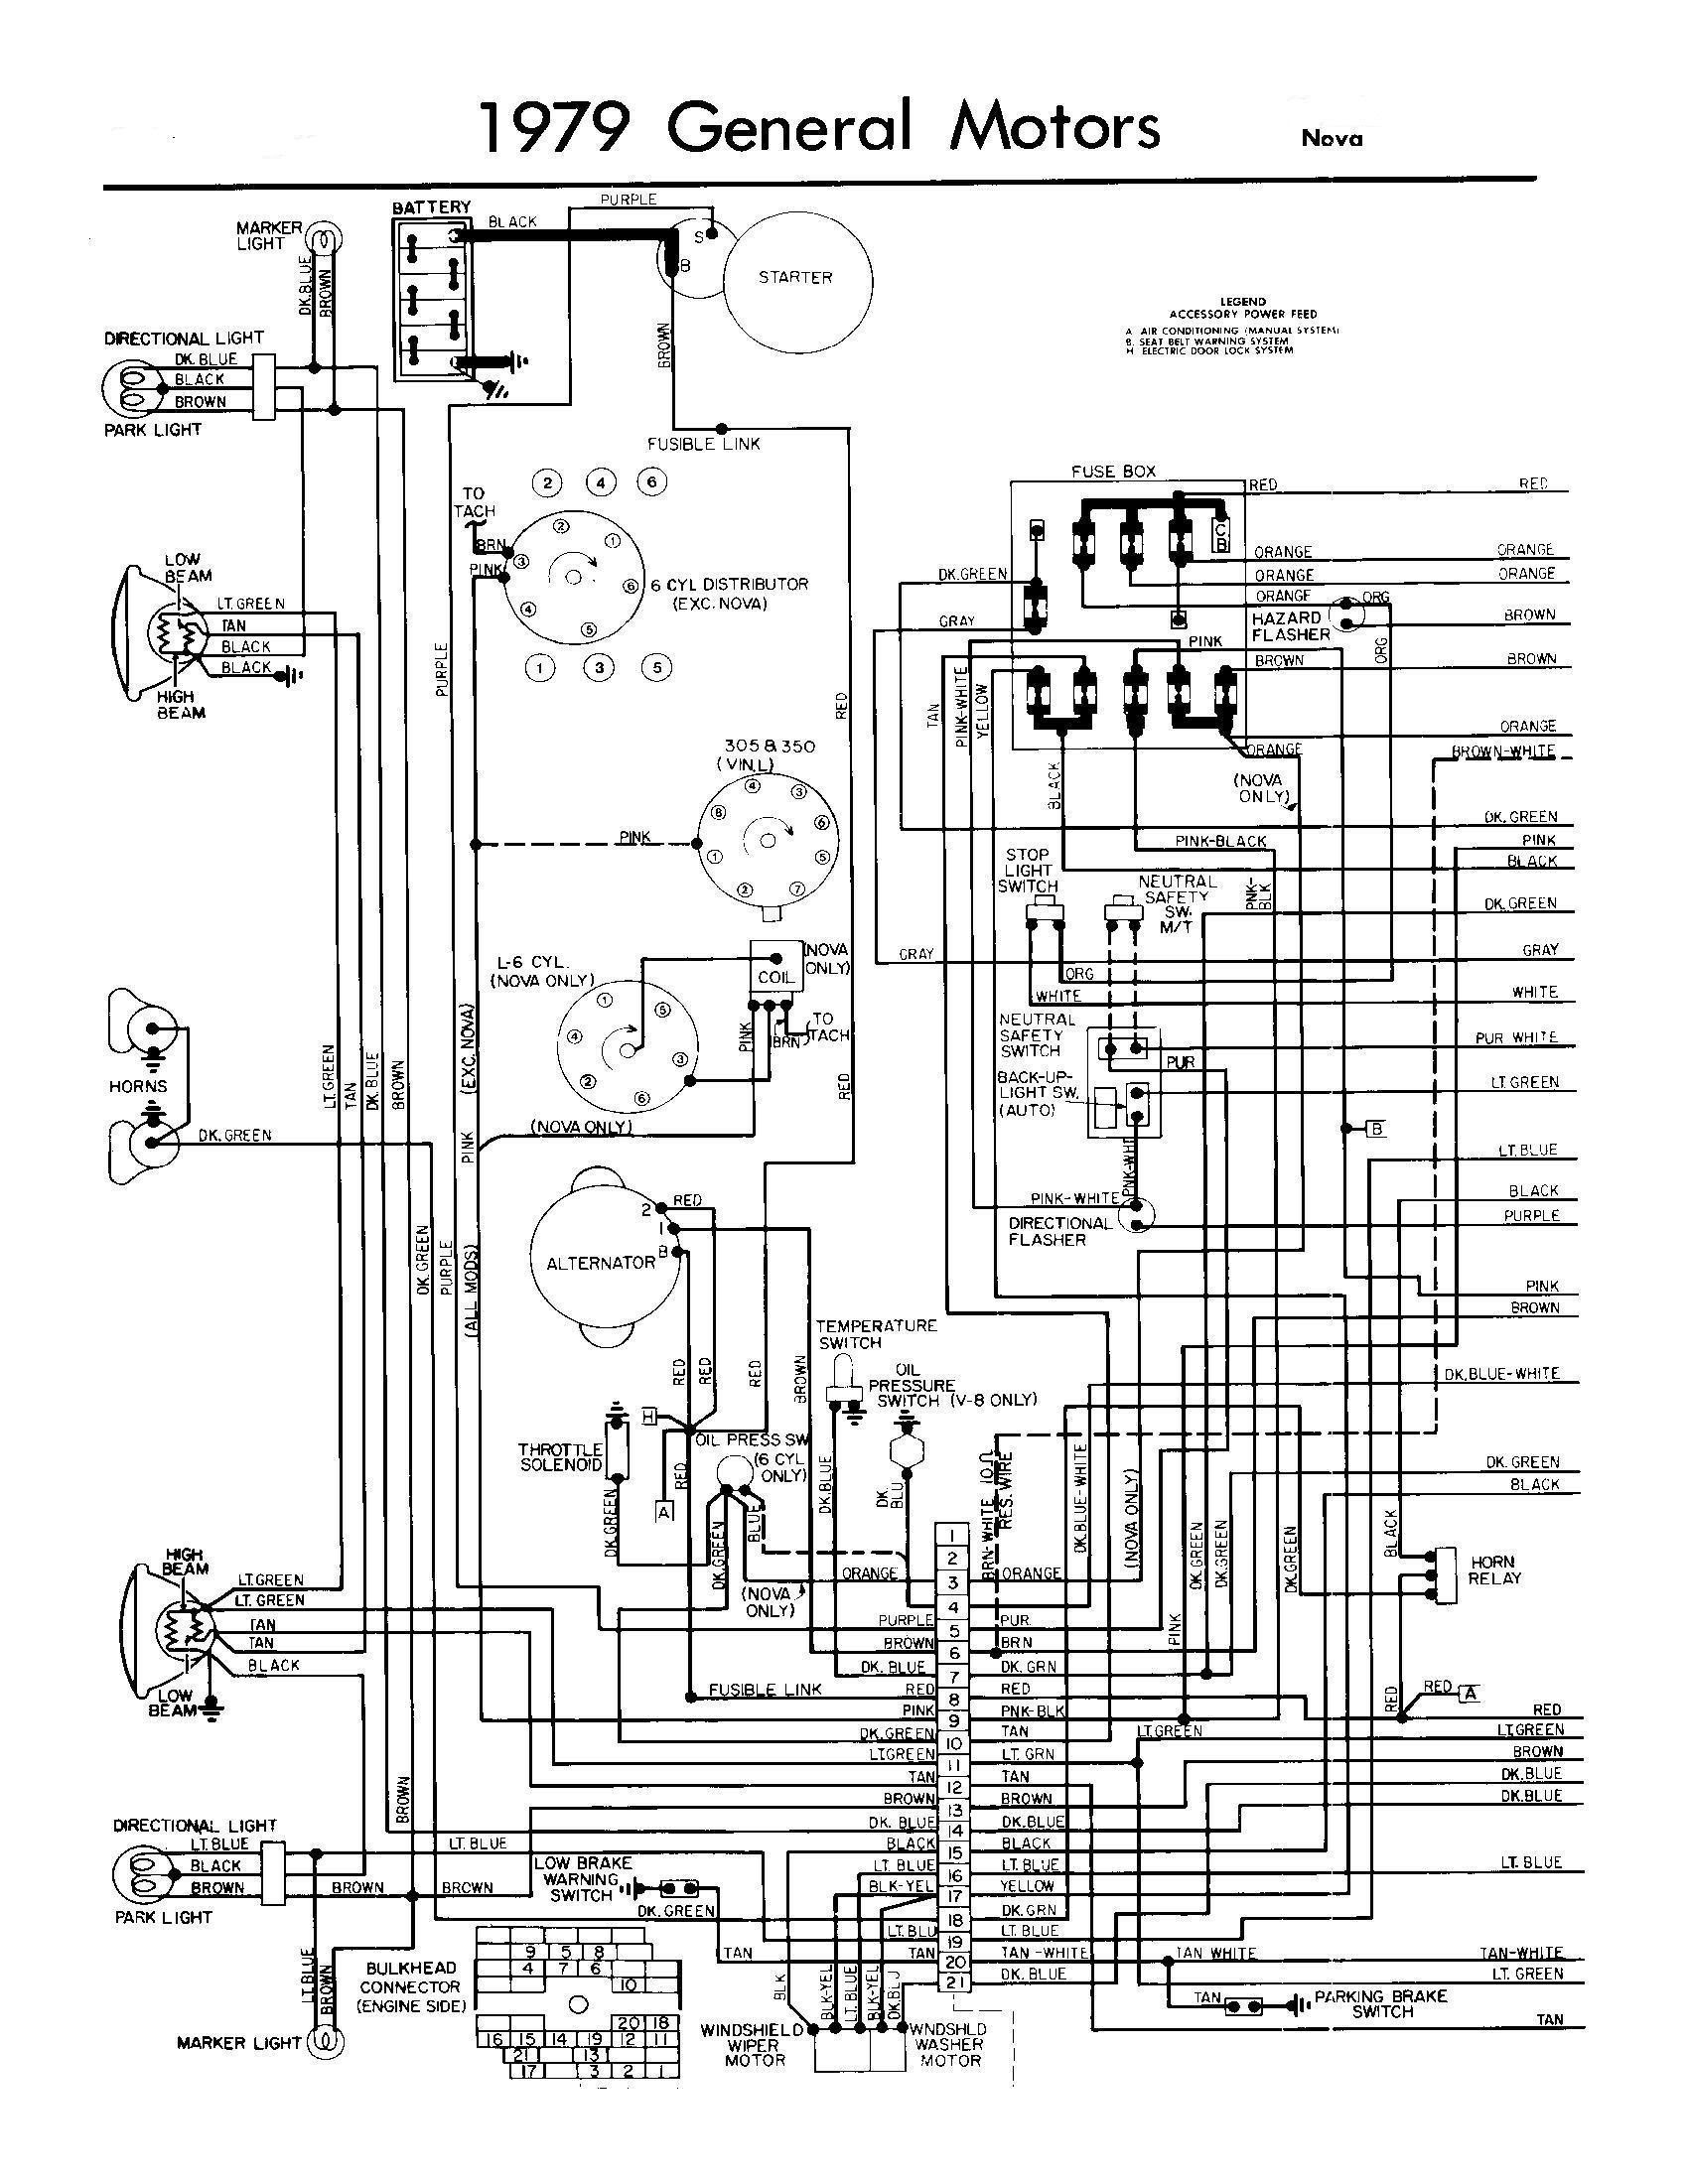 General Fuse Box Diagram Wiring Diagram Resource A Resource A Led Illumina It